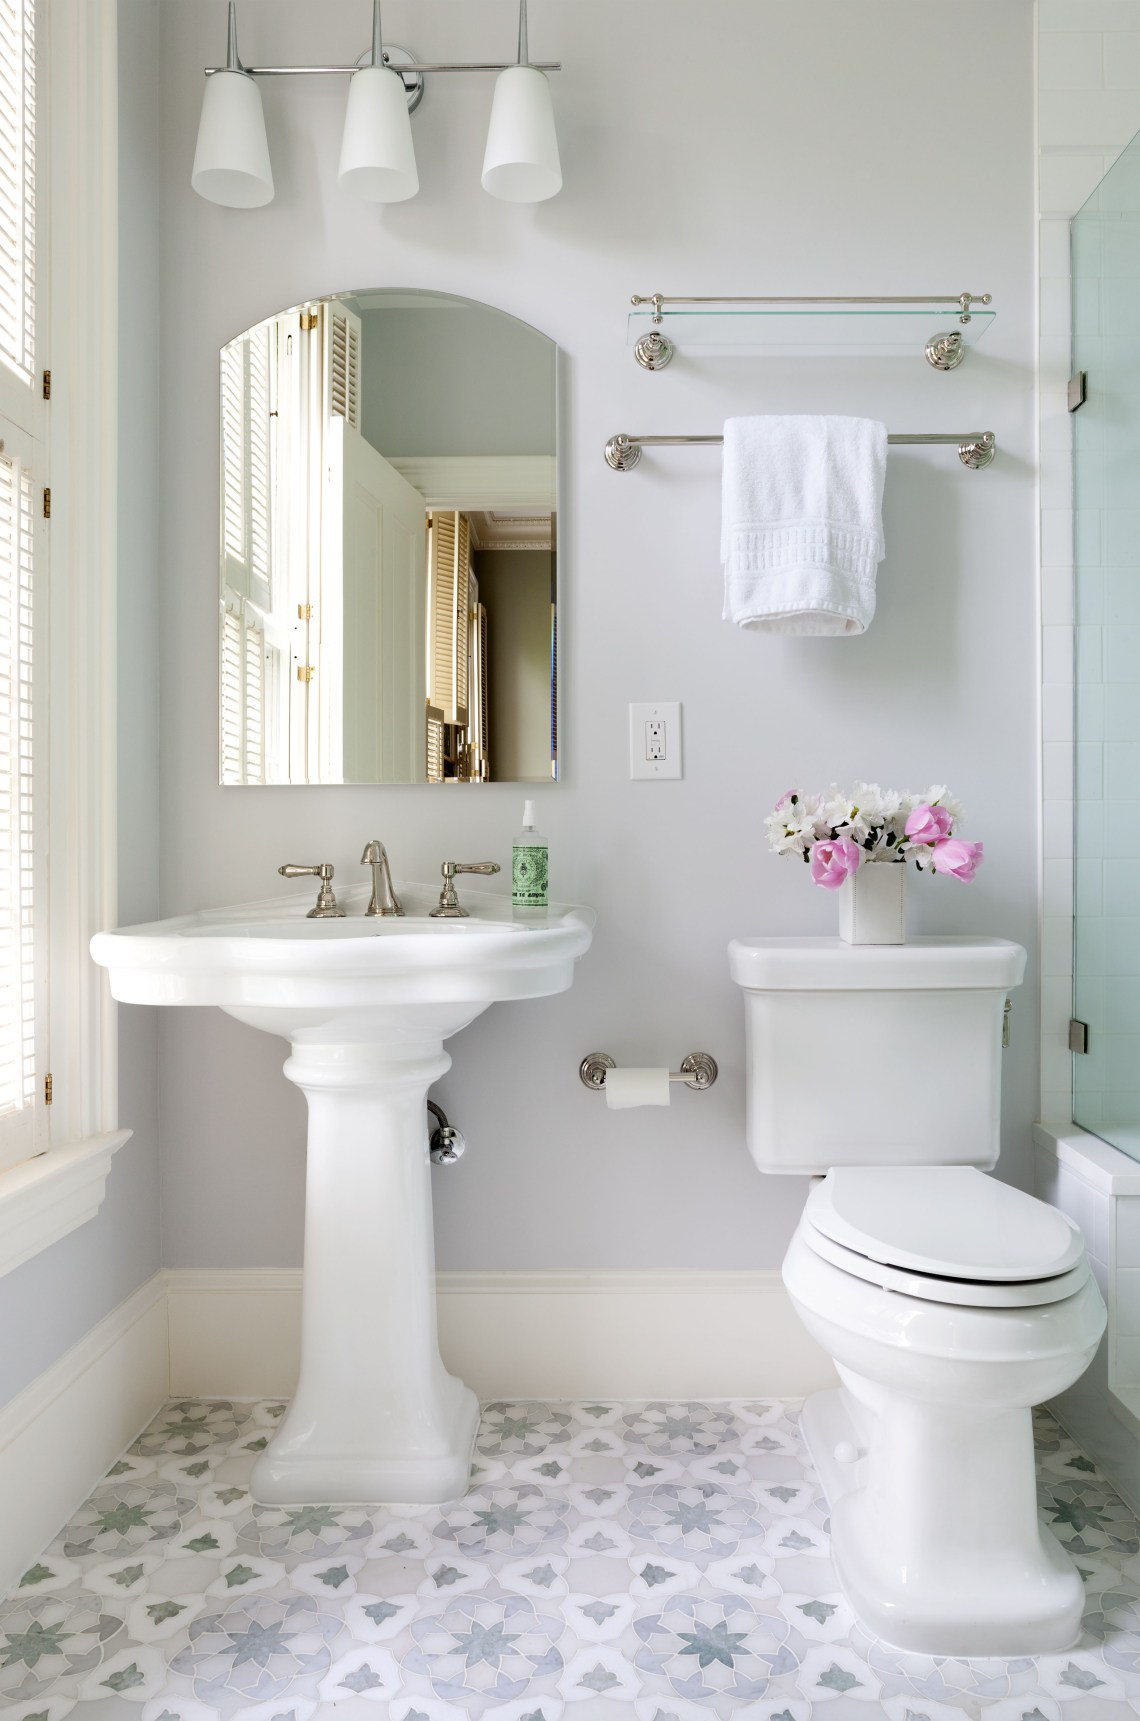 Pin Claudine Kurp On Bathrooms Shab Chic Bathroom